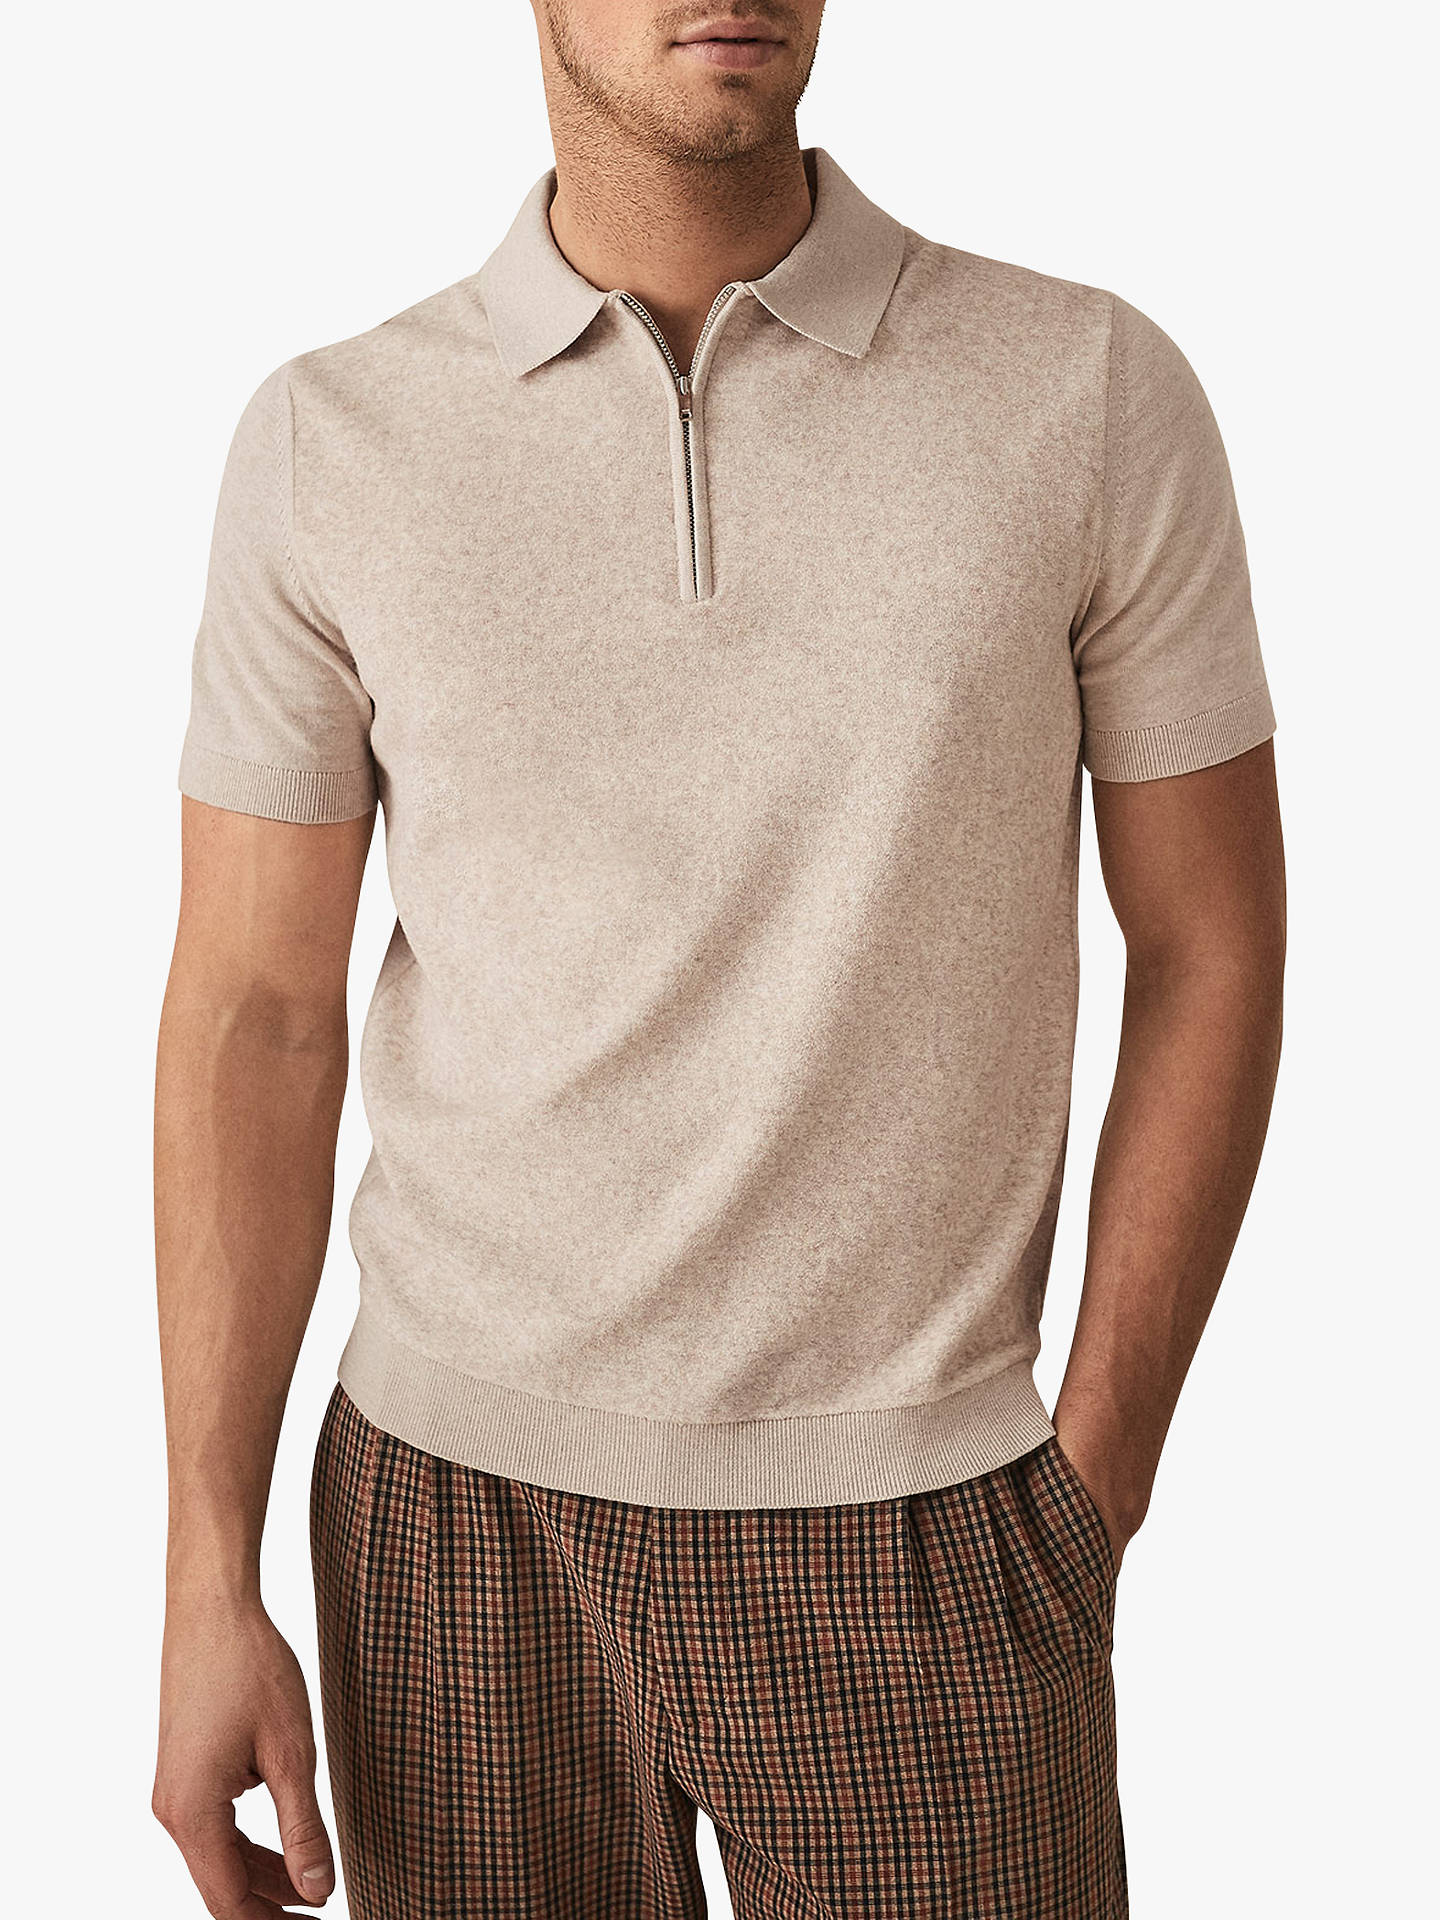 46bf6e459e7 Buy Reiss Victor Towelling Zip Neck Polo Shirt, Stone, L Online at  johnlewis.